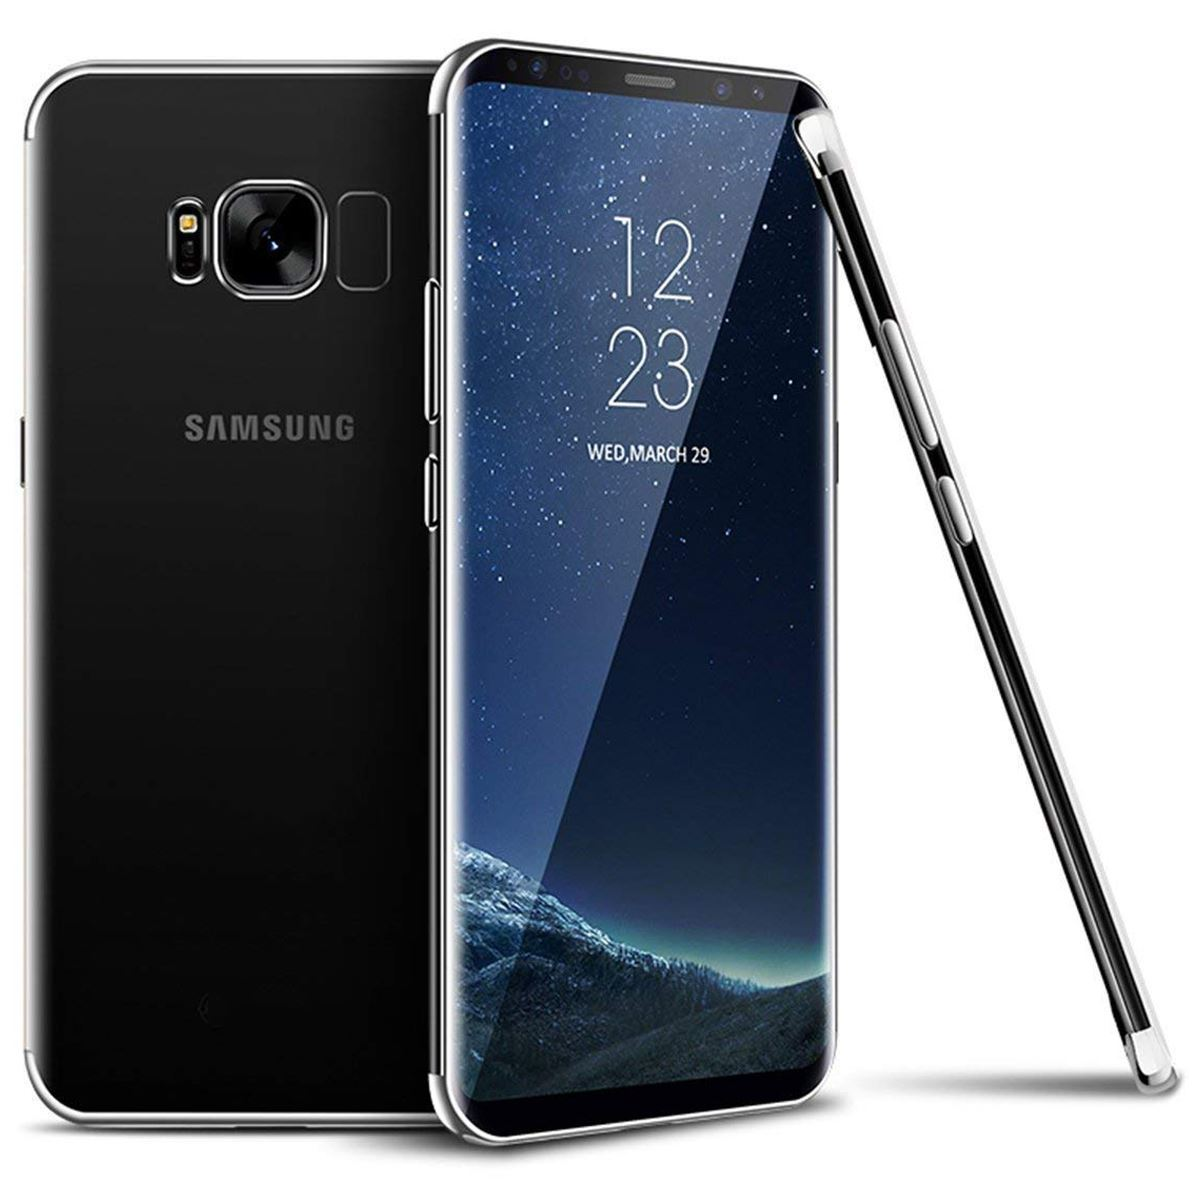 Samsung Galaxy Note 8 Case Silicone Gel Clear Cover - Silver